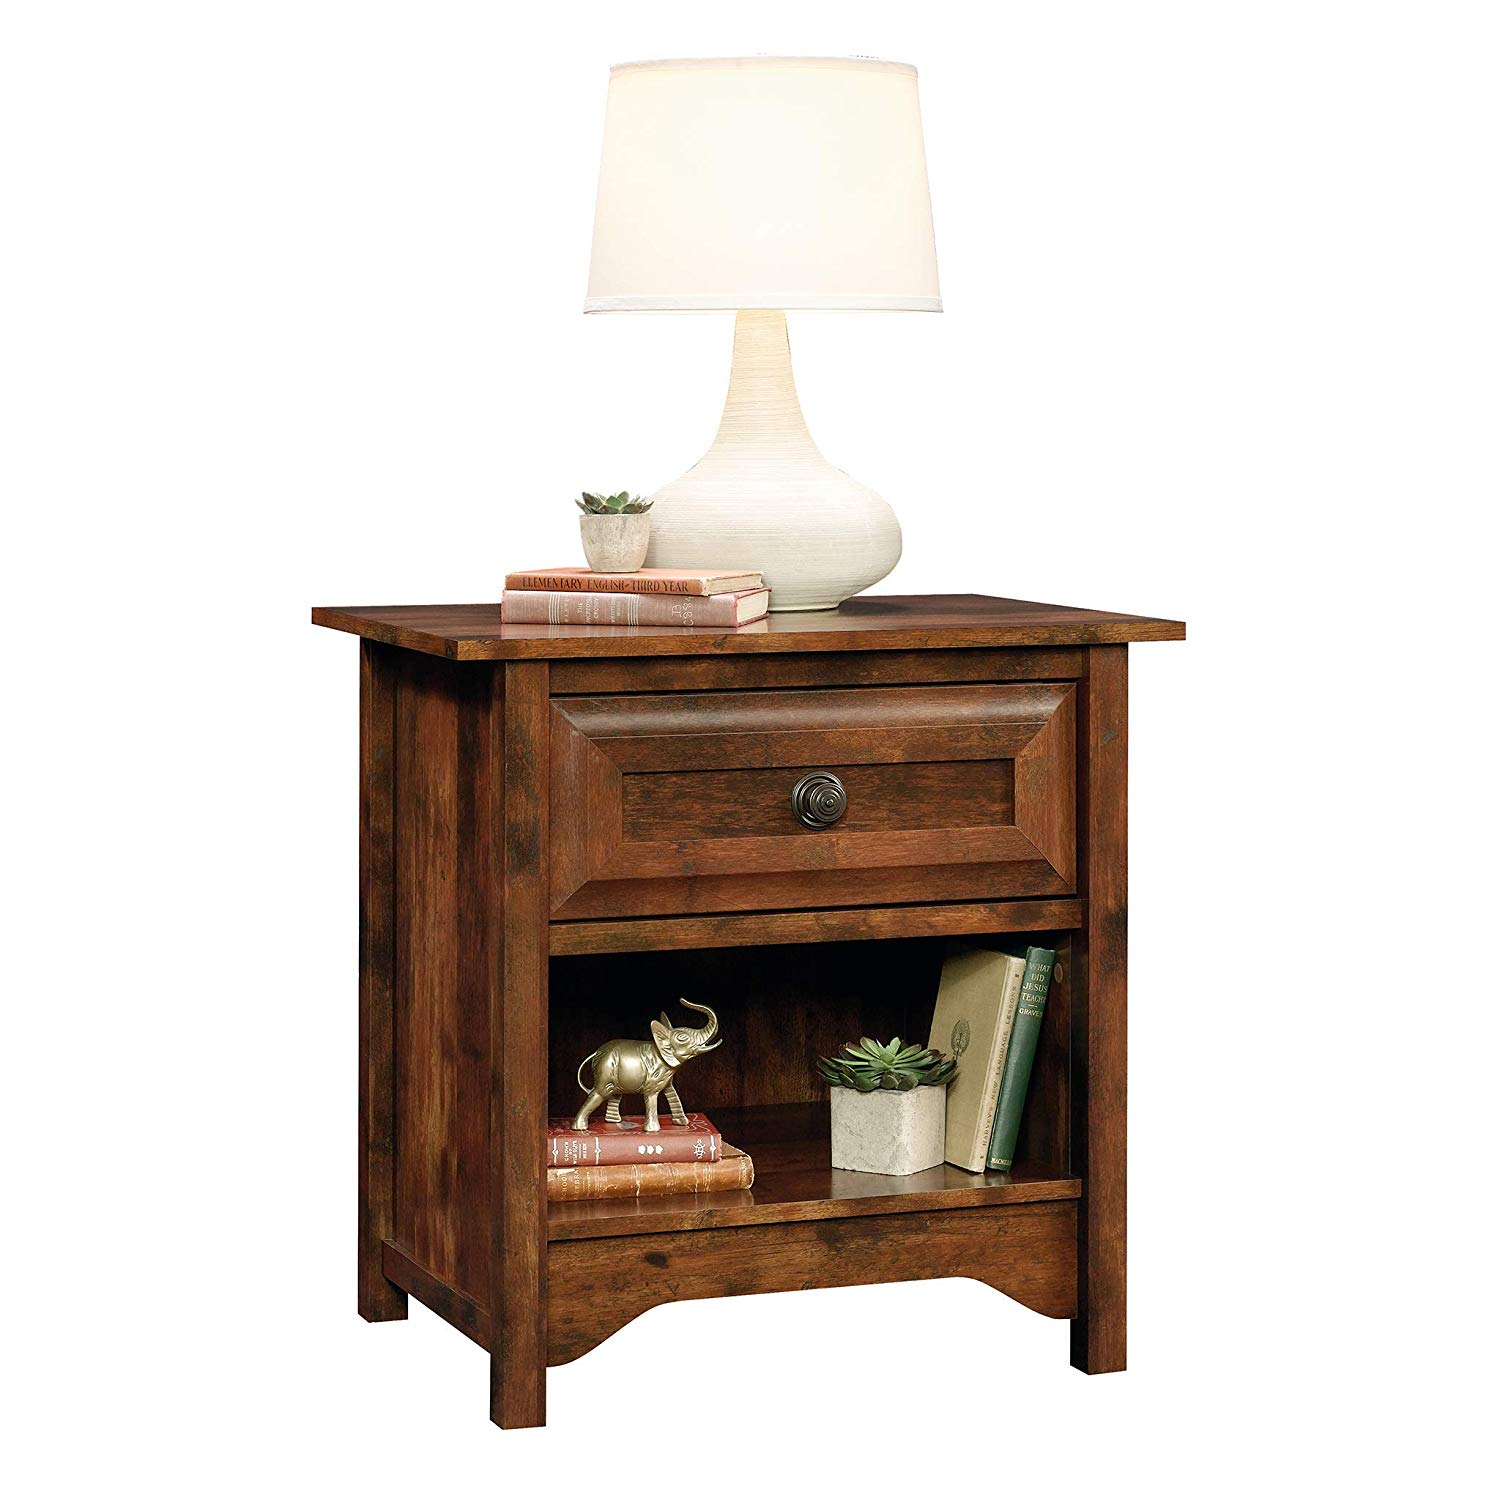 sauder viabella night stand table milled cherry end curado finish kitchen dining thomasville collectors bedroom set rustic bedding luxury pet residence round glass top bedside